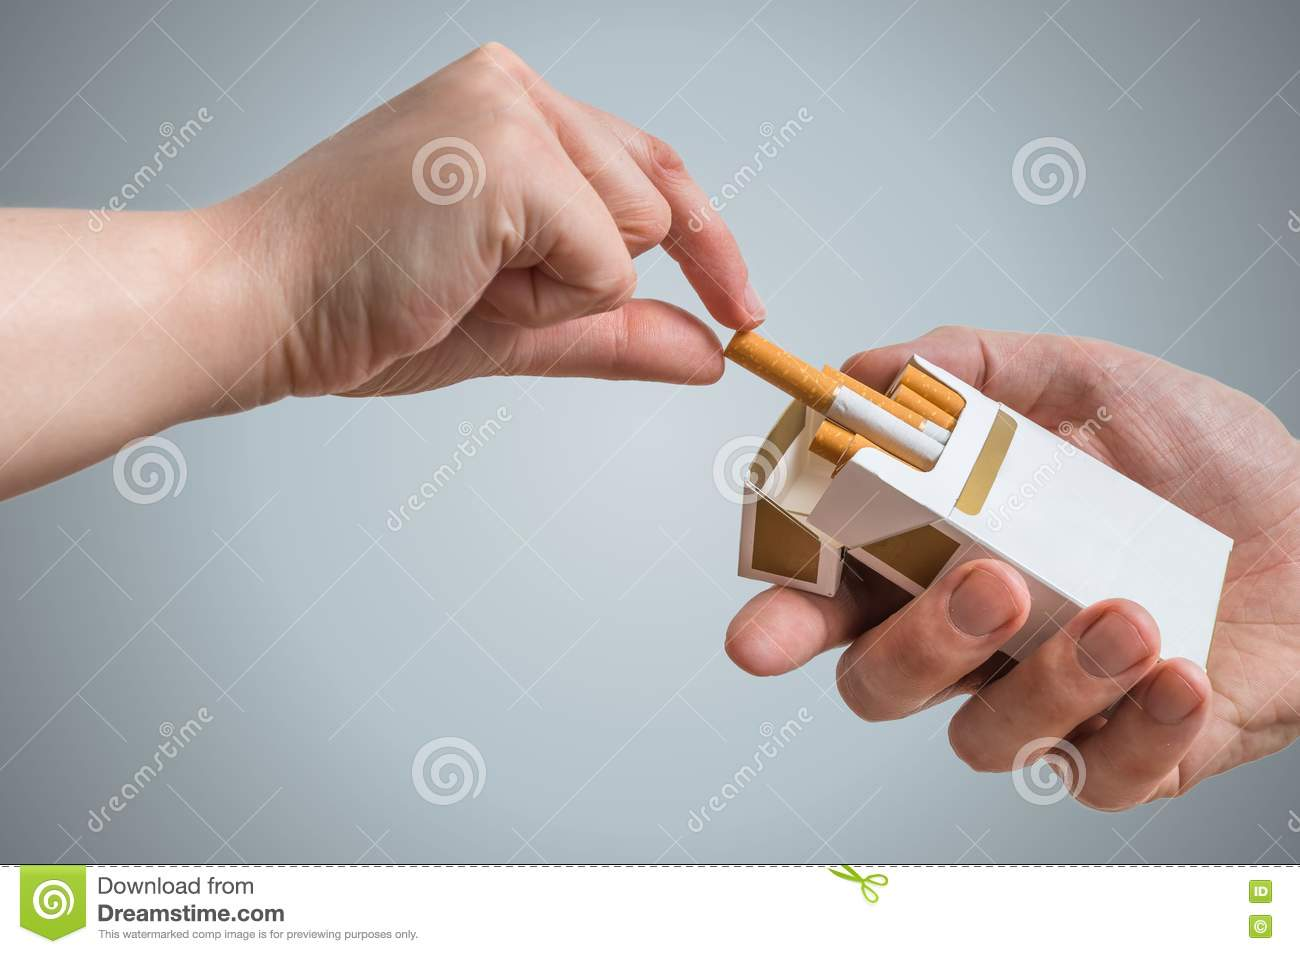 hand is taking cigarette from cigarette pack an accepting an offer hand is taking cigarette from cigarette pack an accepting an offer